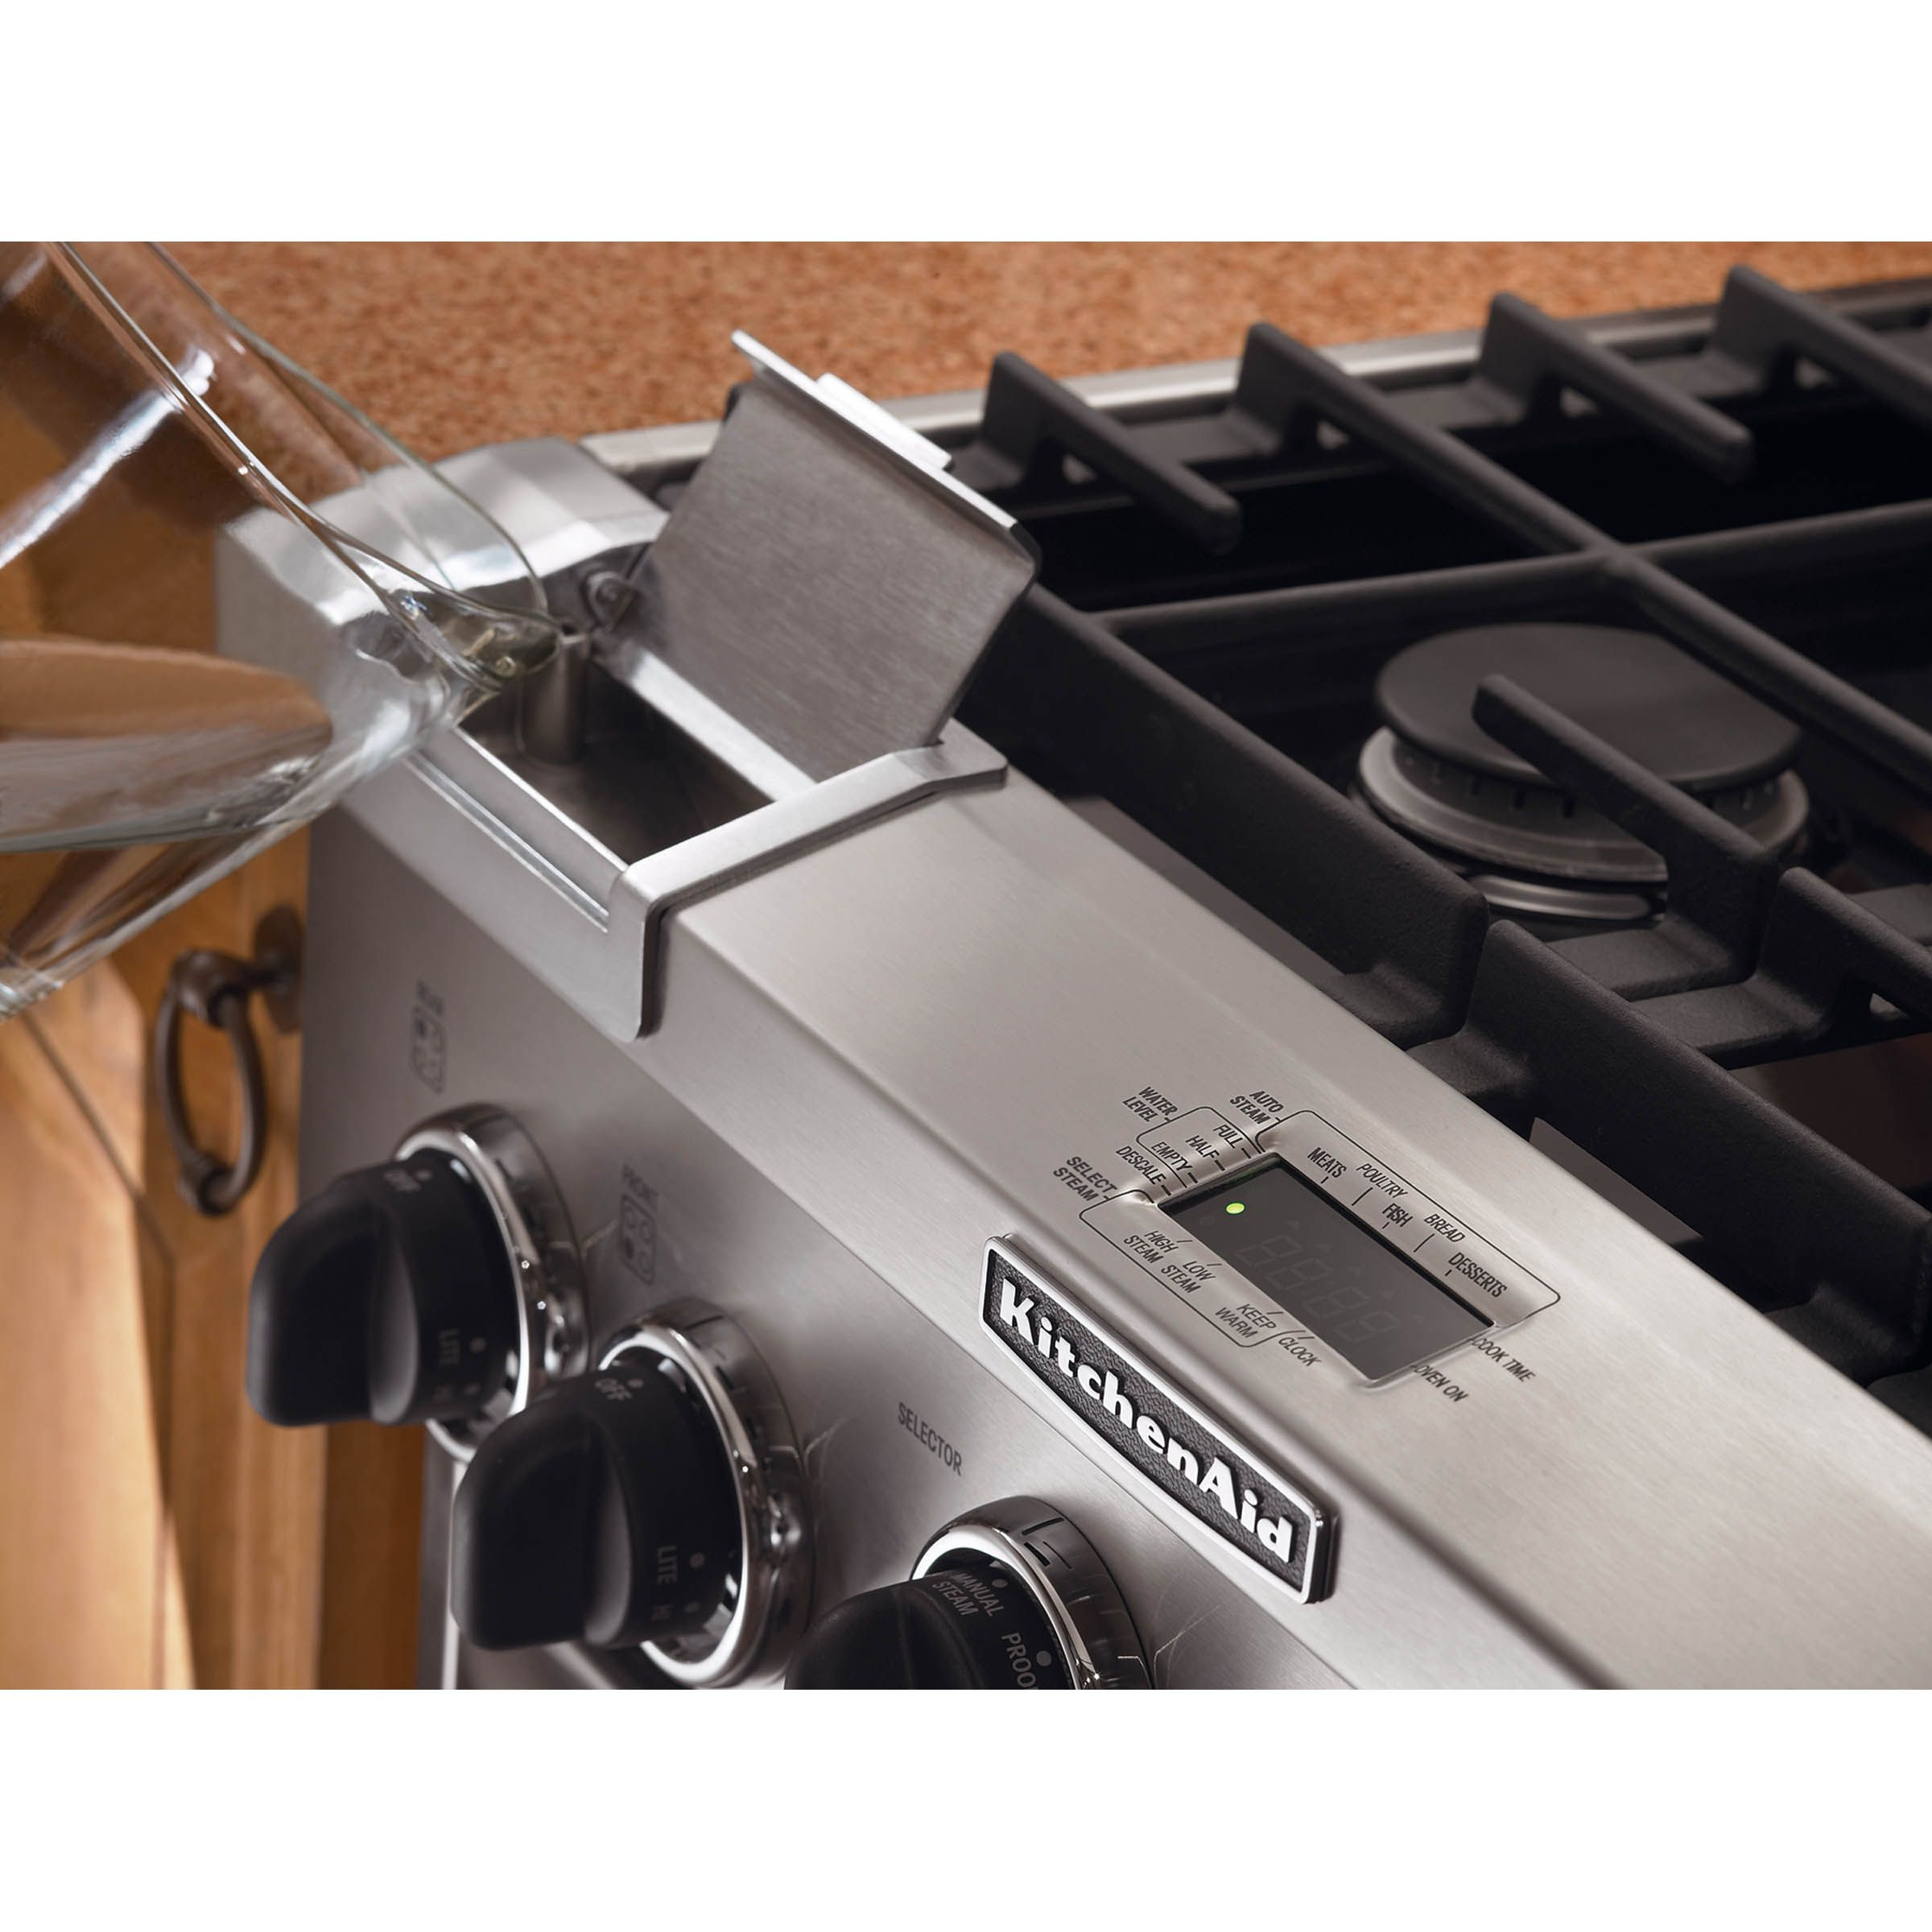 KitchenAid 30 in. Freestanding Dual-Fuel Range w/ Steam Assist